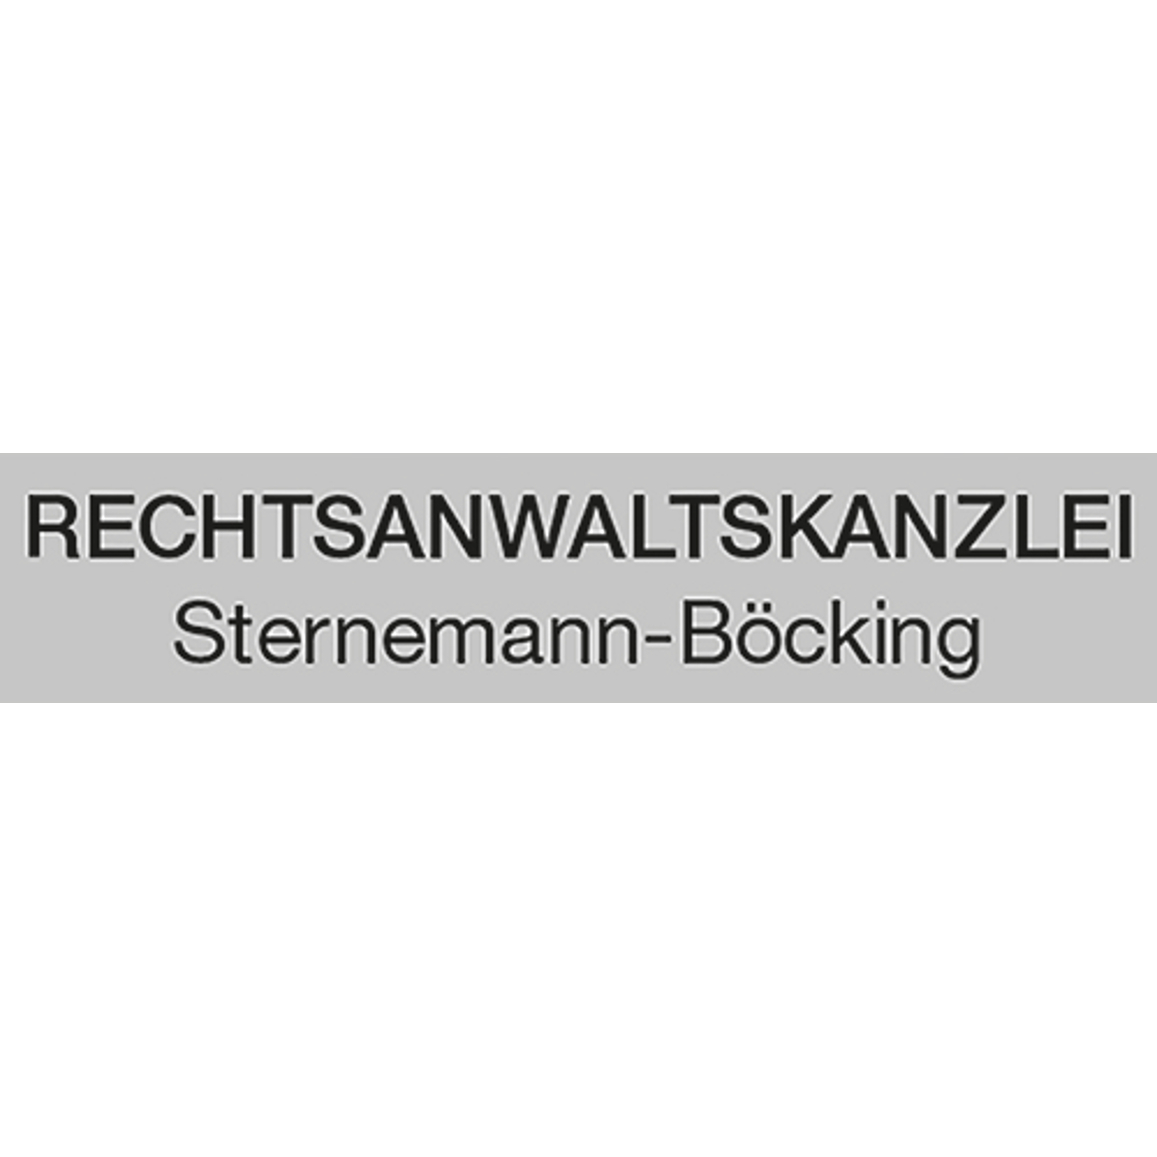 rechtsanwaltskanzlei sternemann b cking neuss kontaktieren. Black Bedroom Furniture Sets. Home Design Ideas